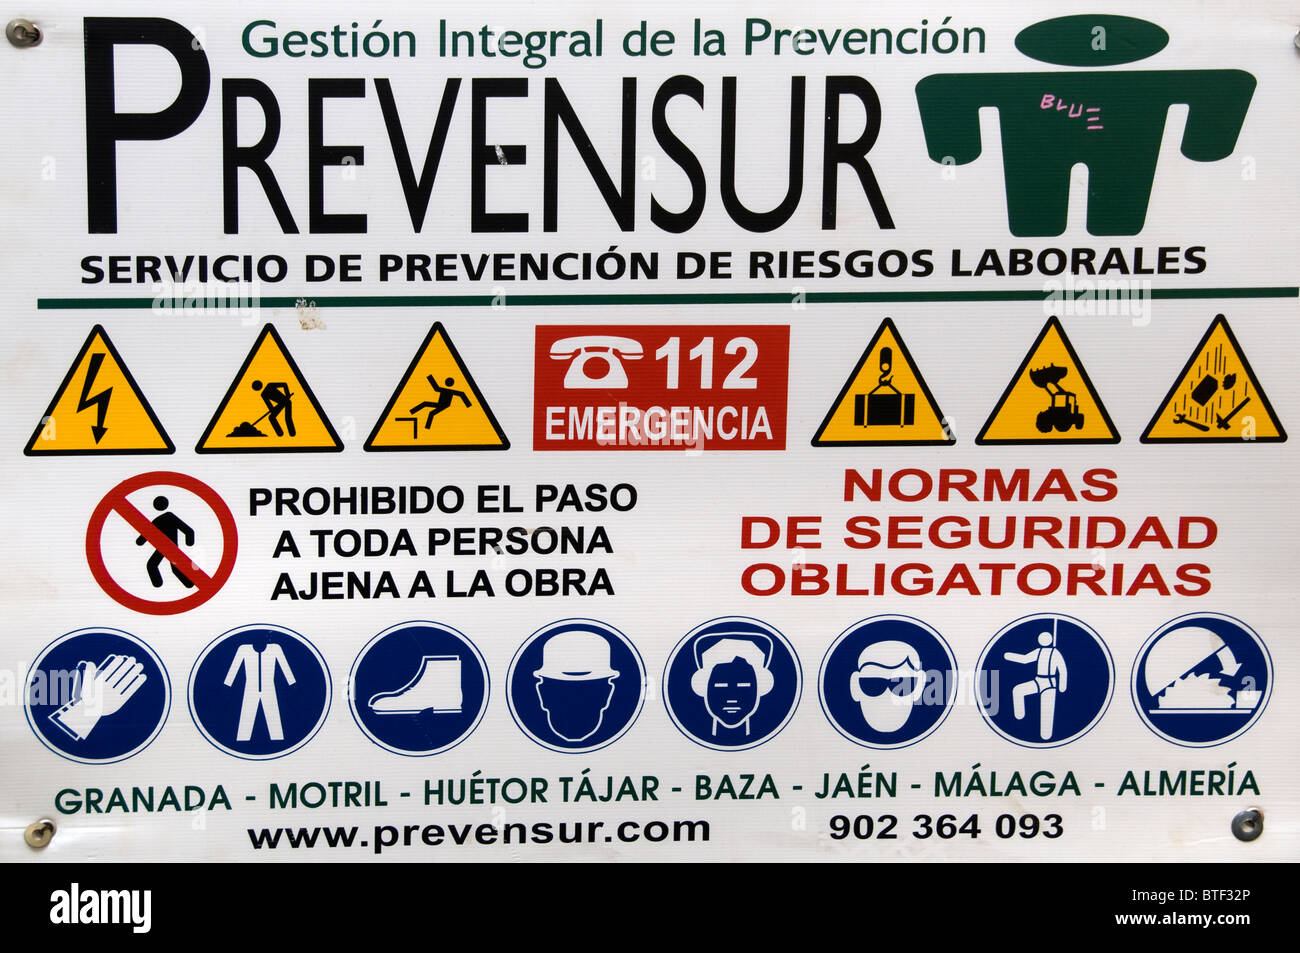 Granada Spain Andalusia Prevention site builders pay attention - Stock Image